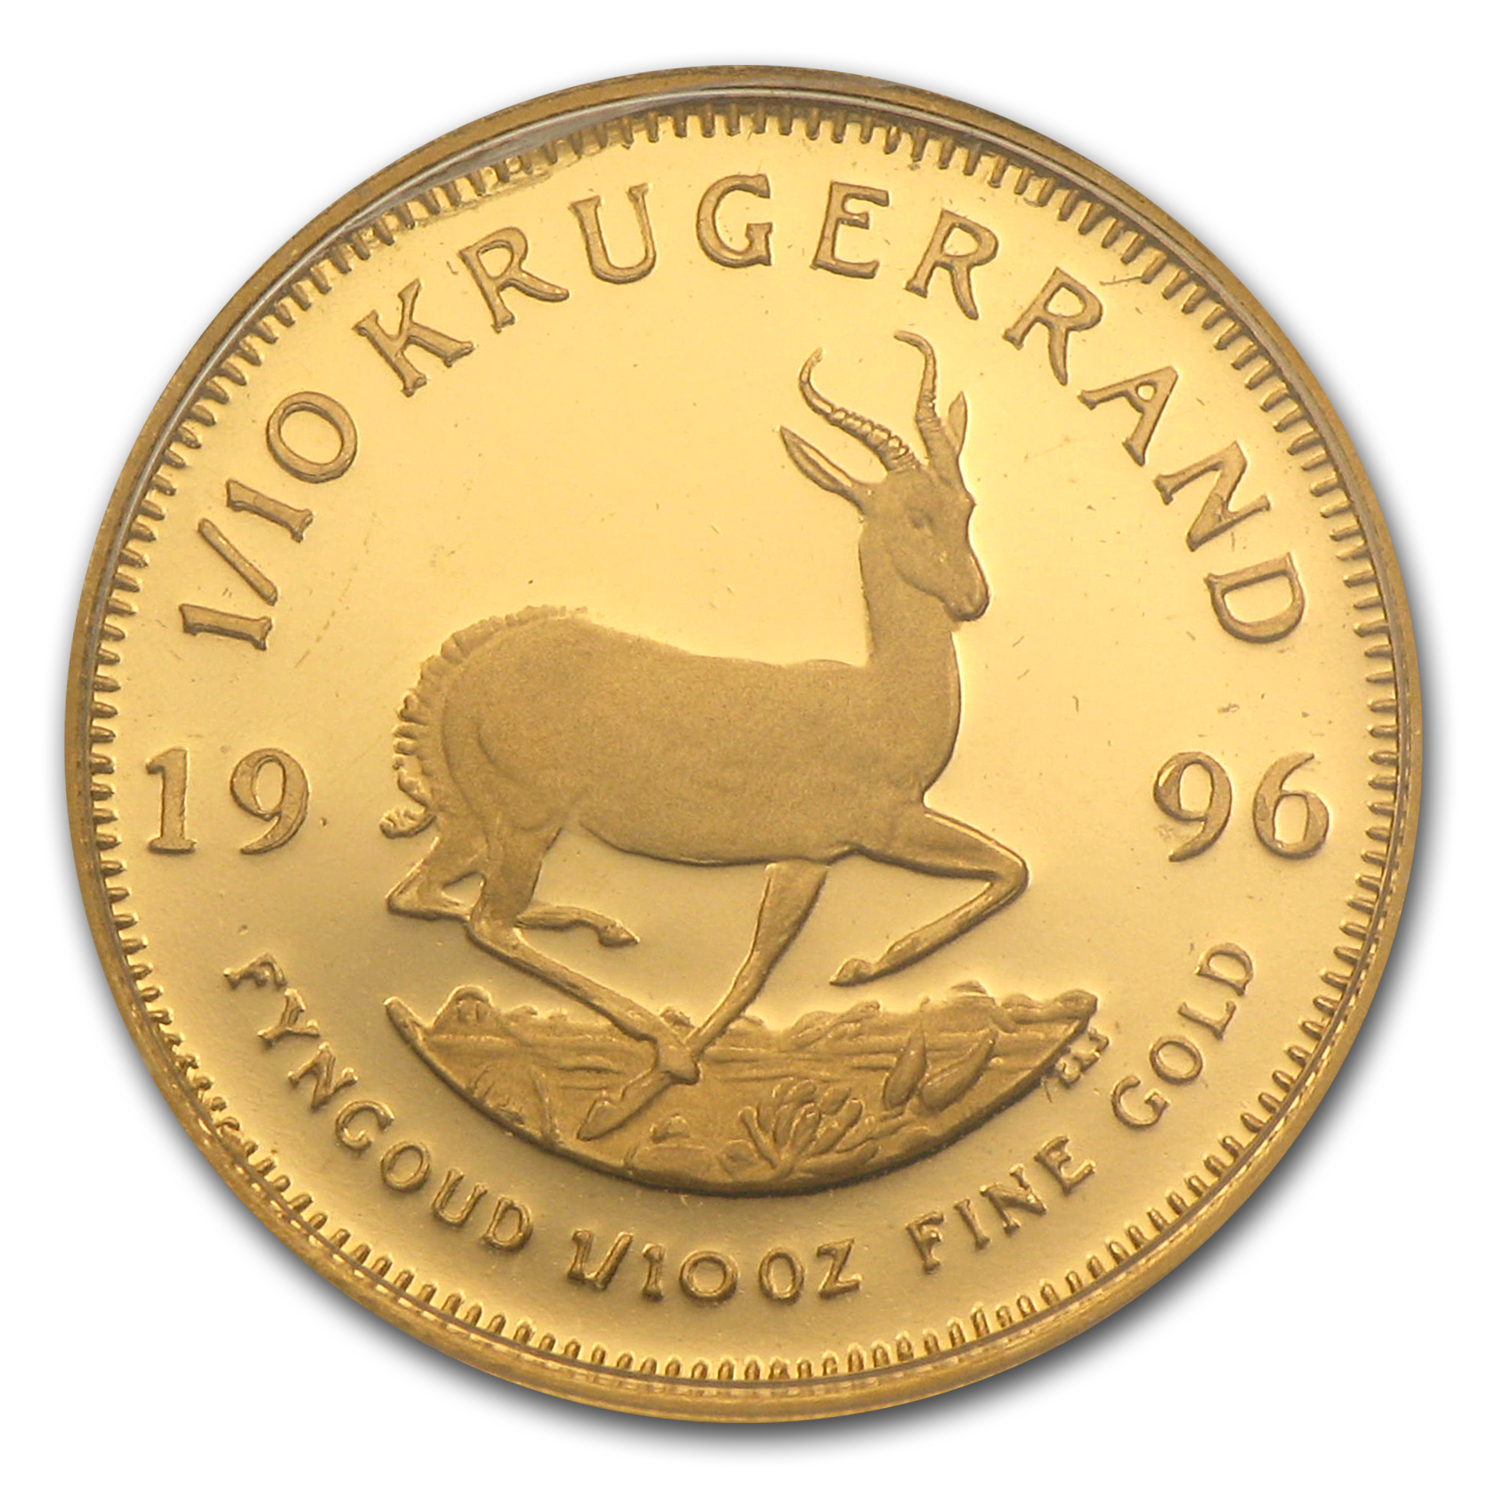 1996 1/10 oz Gold South African Krugerrand (Proof)